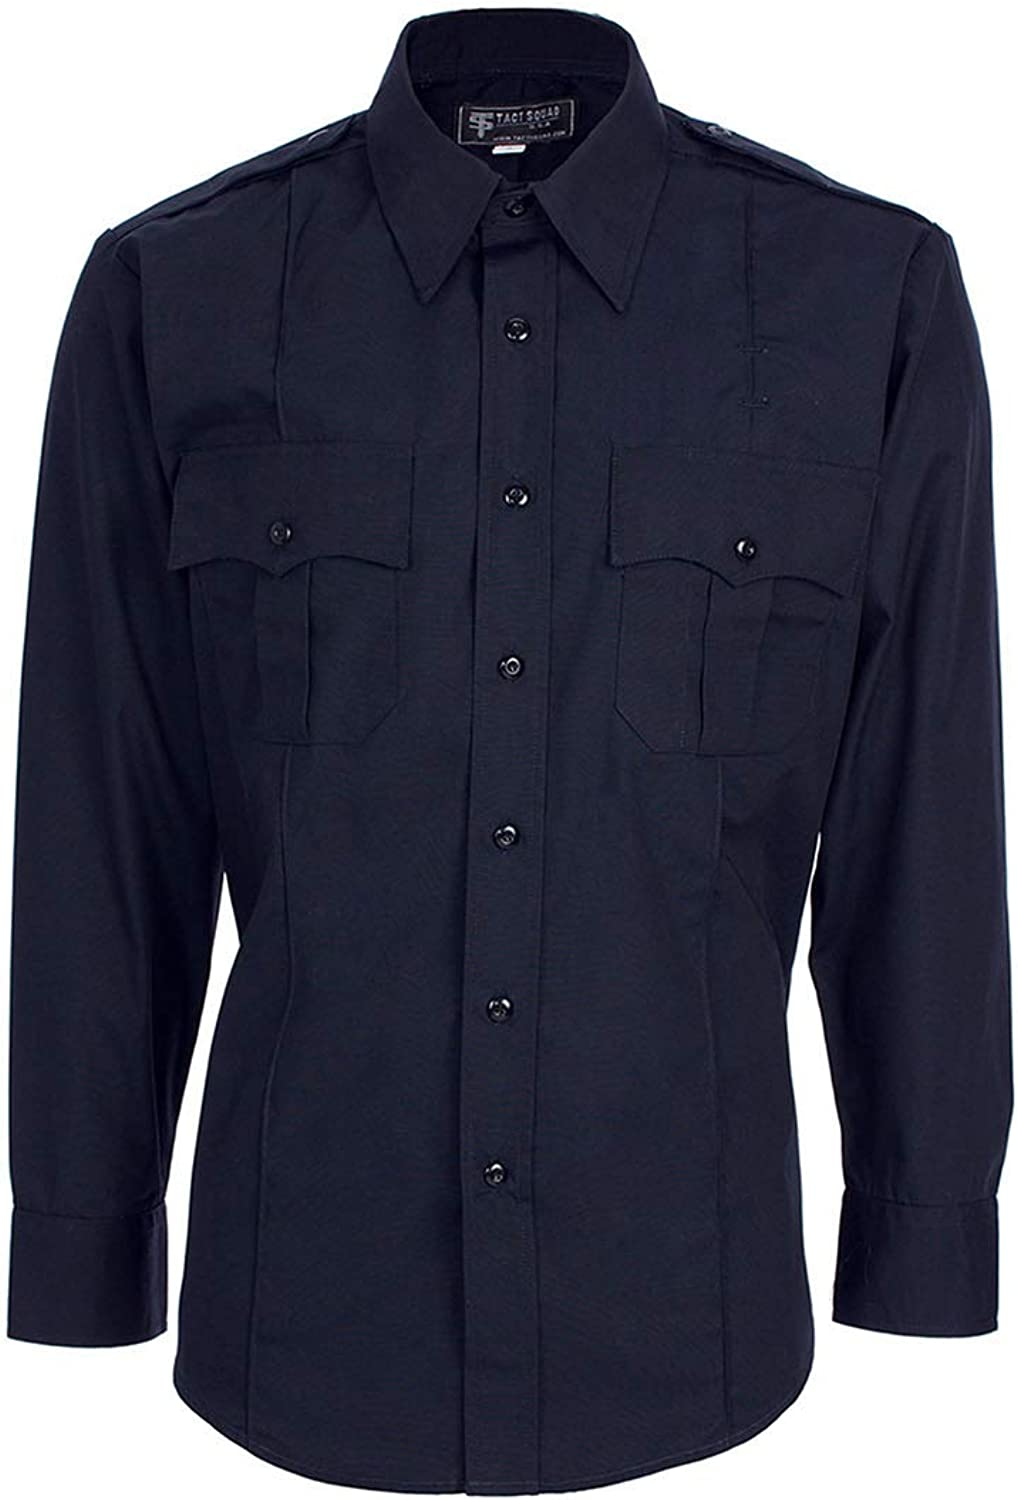 Tact Squad NEW before selling Men's Polyester Ranking TOP20 Cotton Long Shirt Navy 2XL L Sleeve